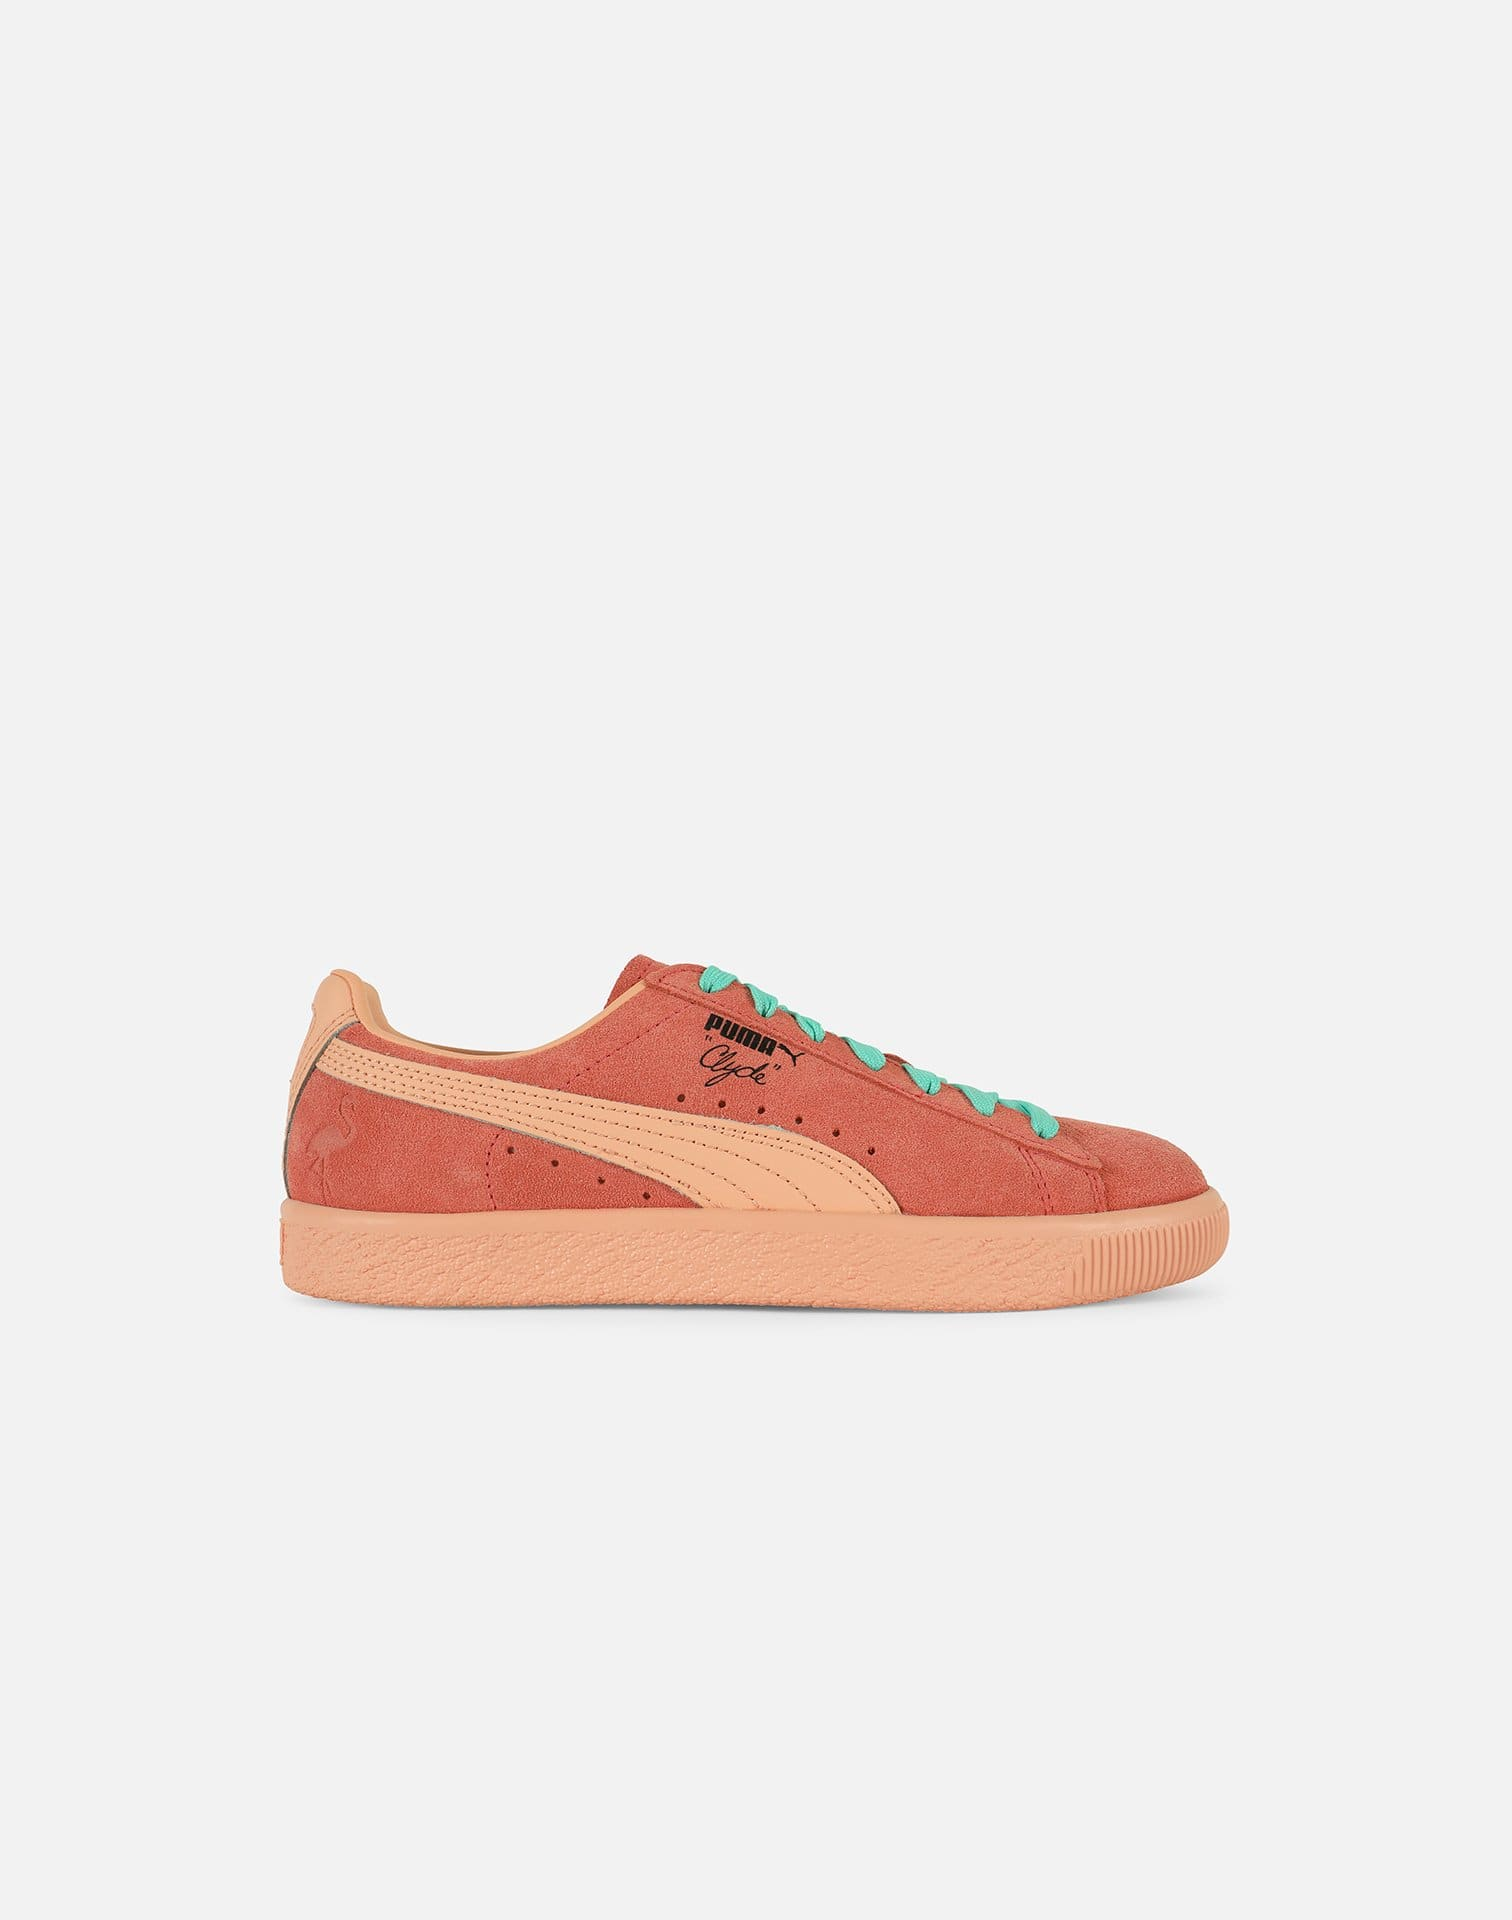 PUMA Clyde Suede 'South Beach' Grade-School